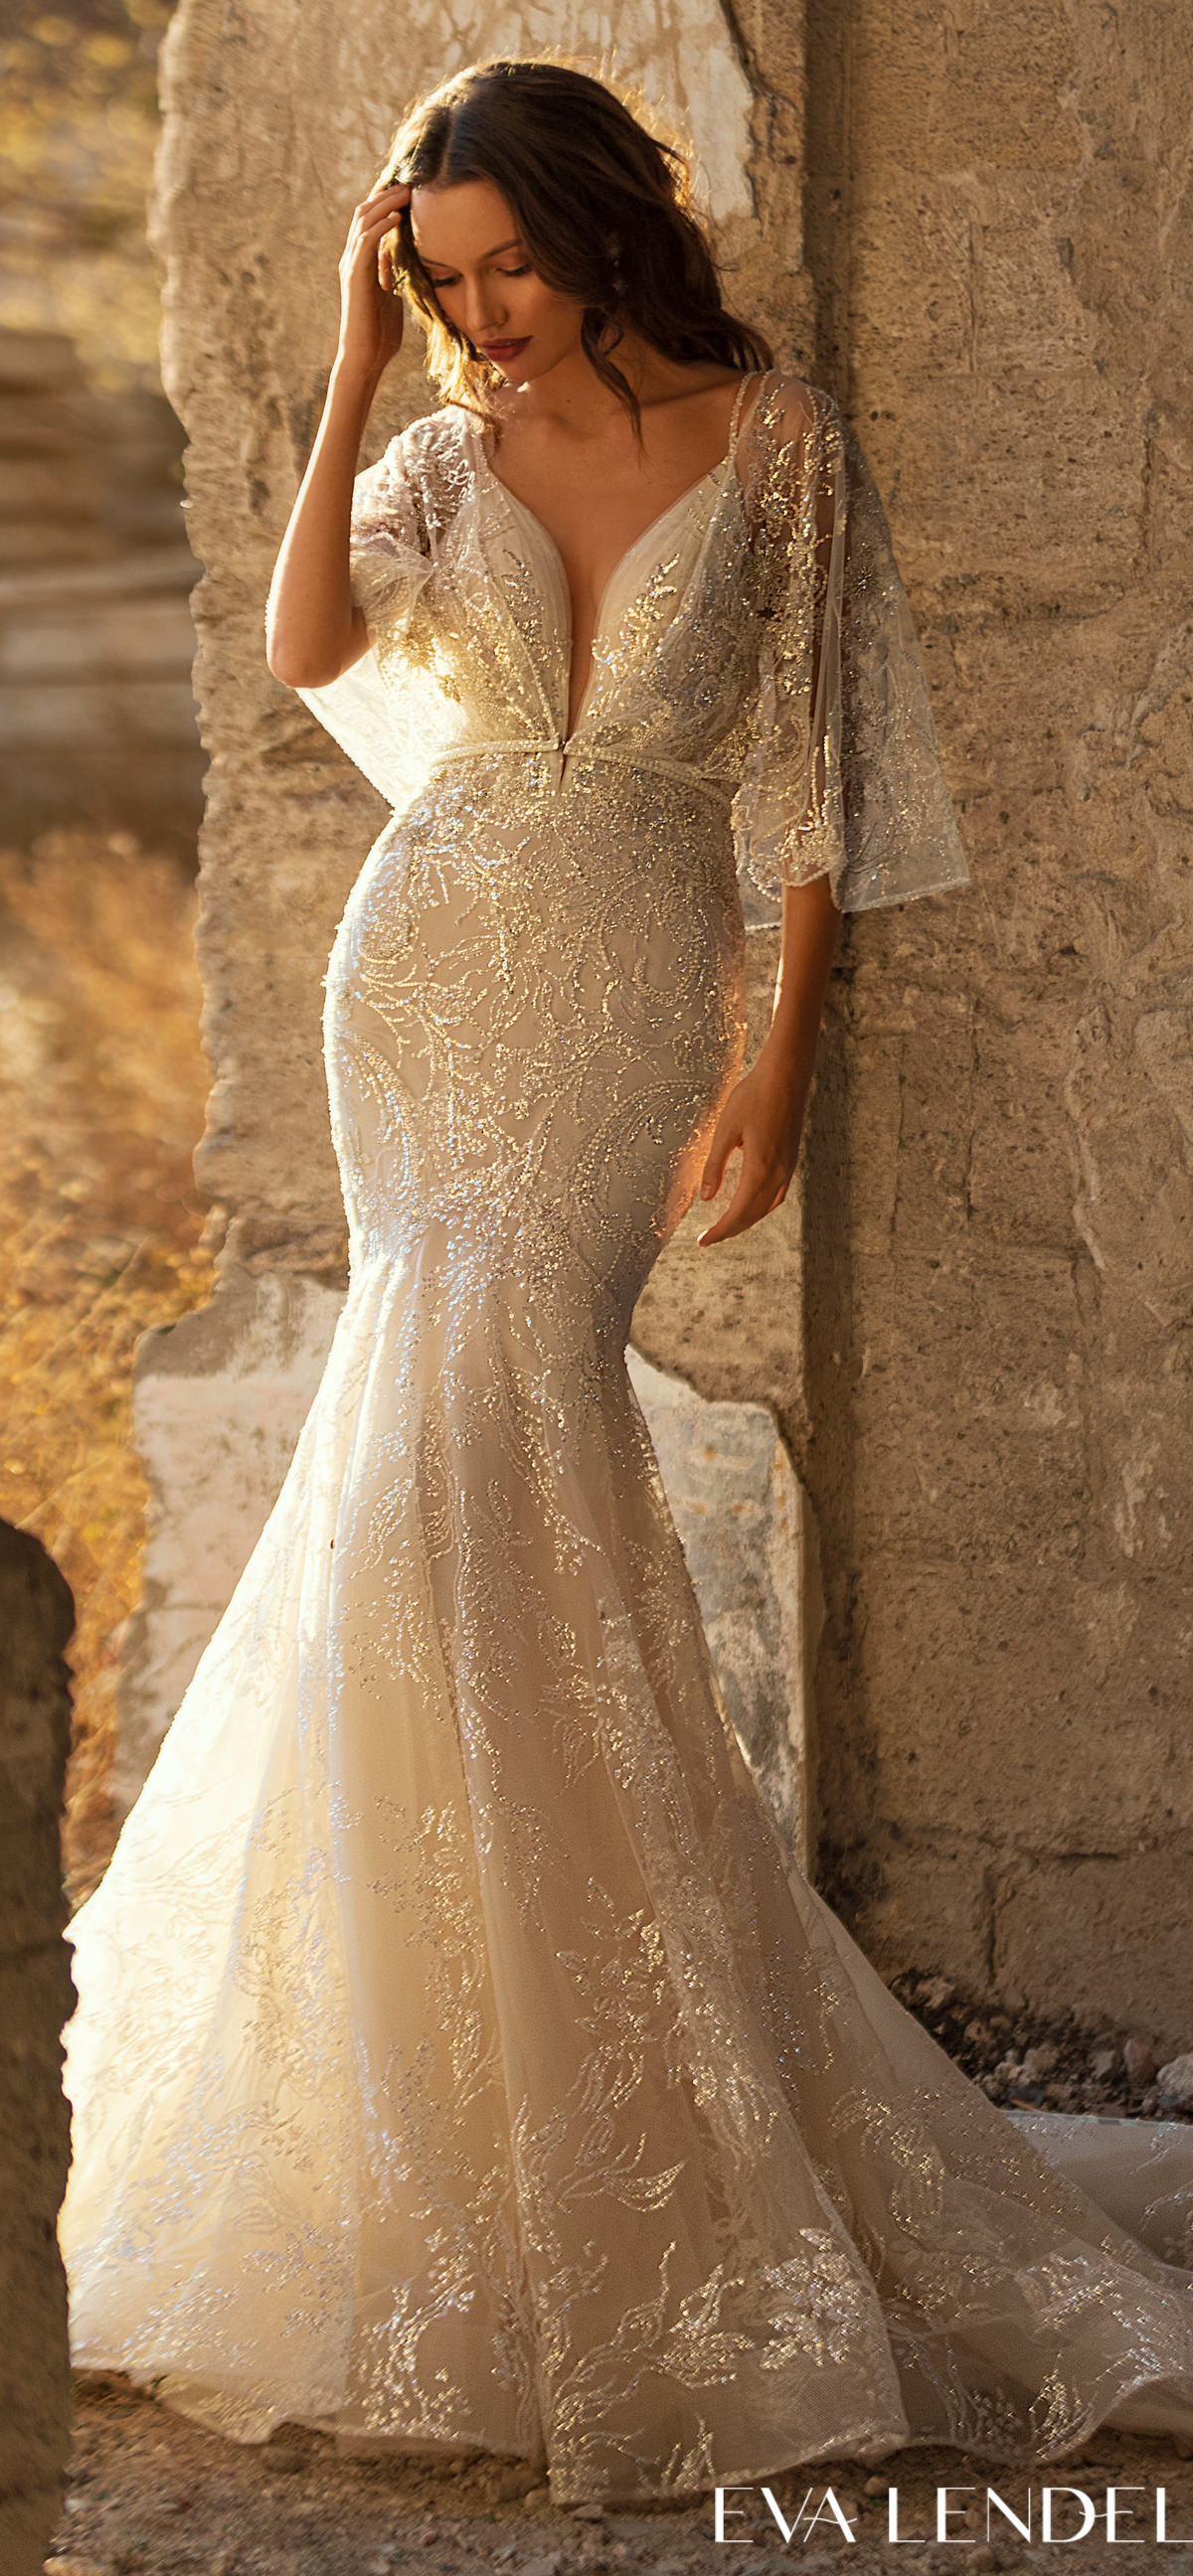 Eva Lendel Wedding Dresses 2021- Golden Hour Collection -Hadley